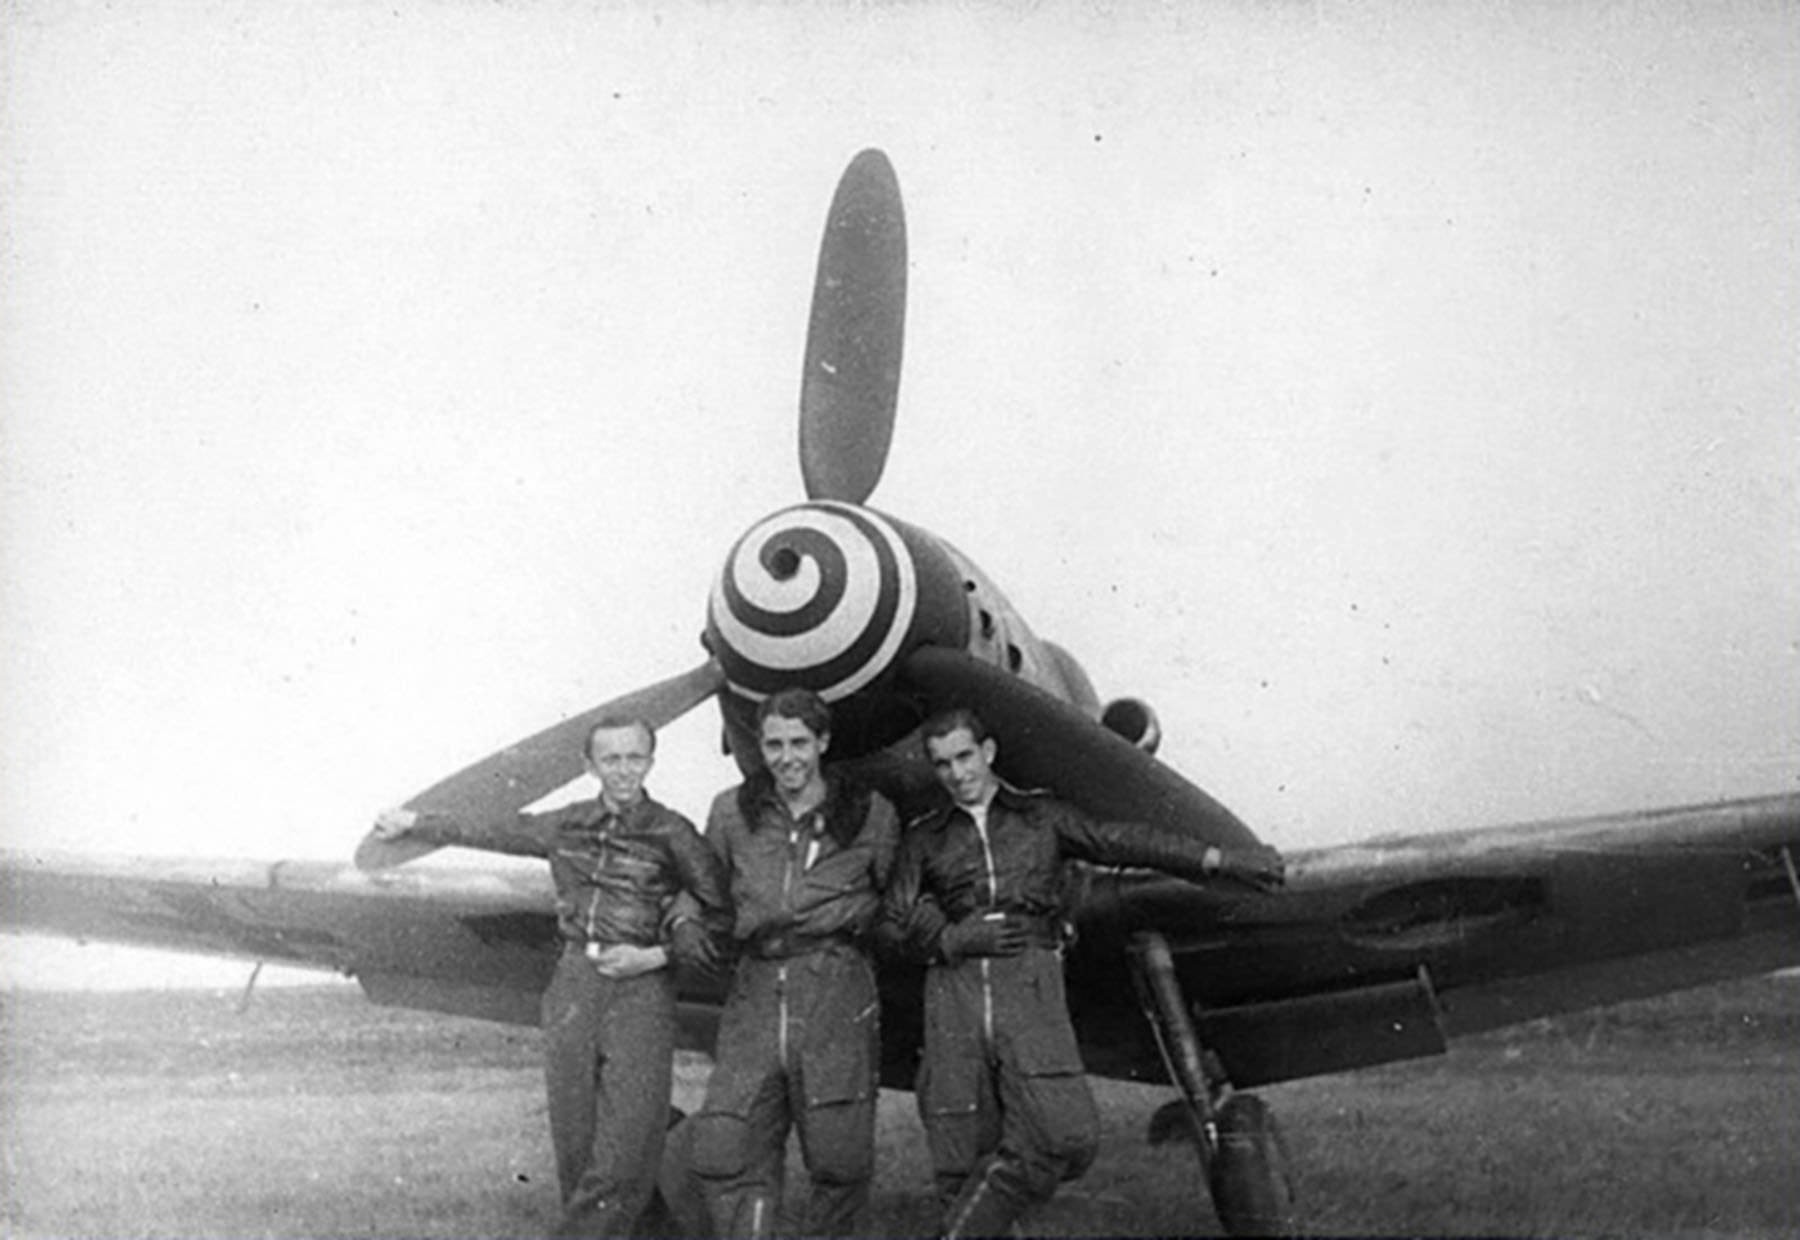 Aircrew Luftwaffe RVT pilots unknown unit along side a Bf 109G6R3 01